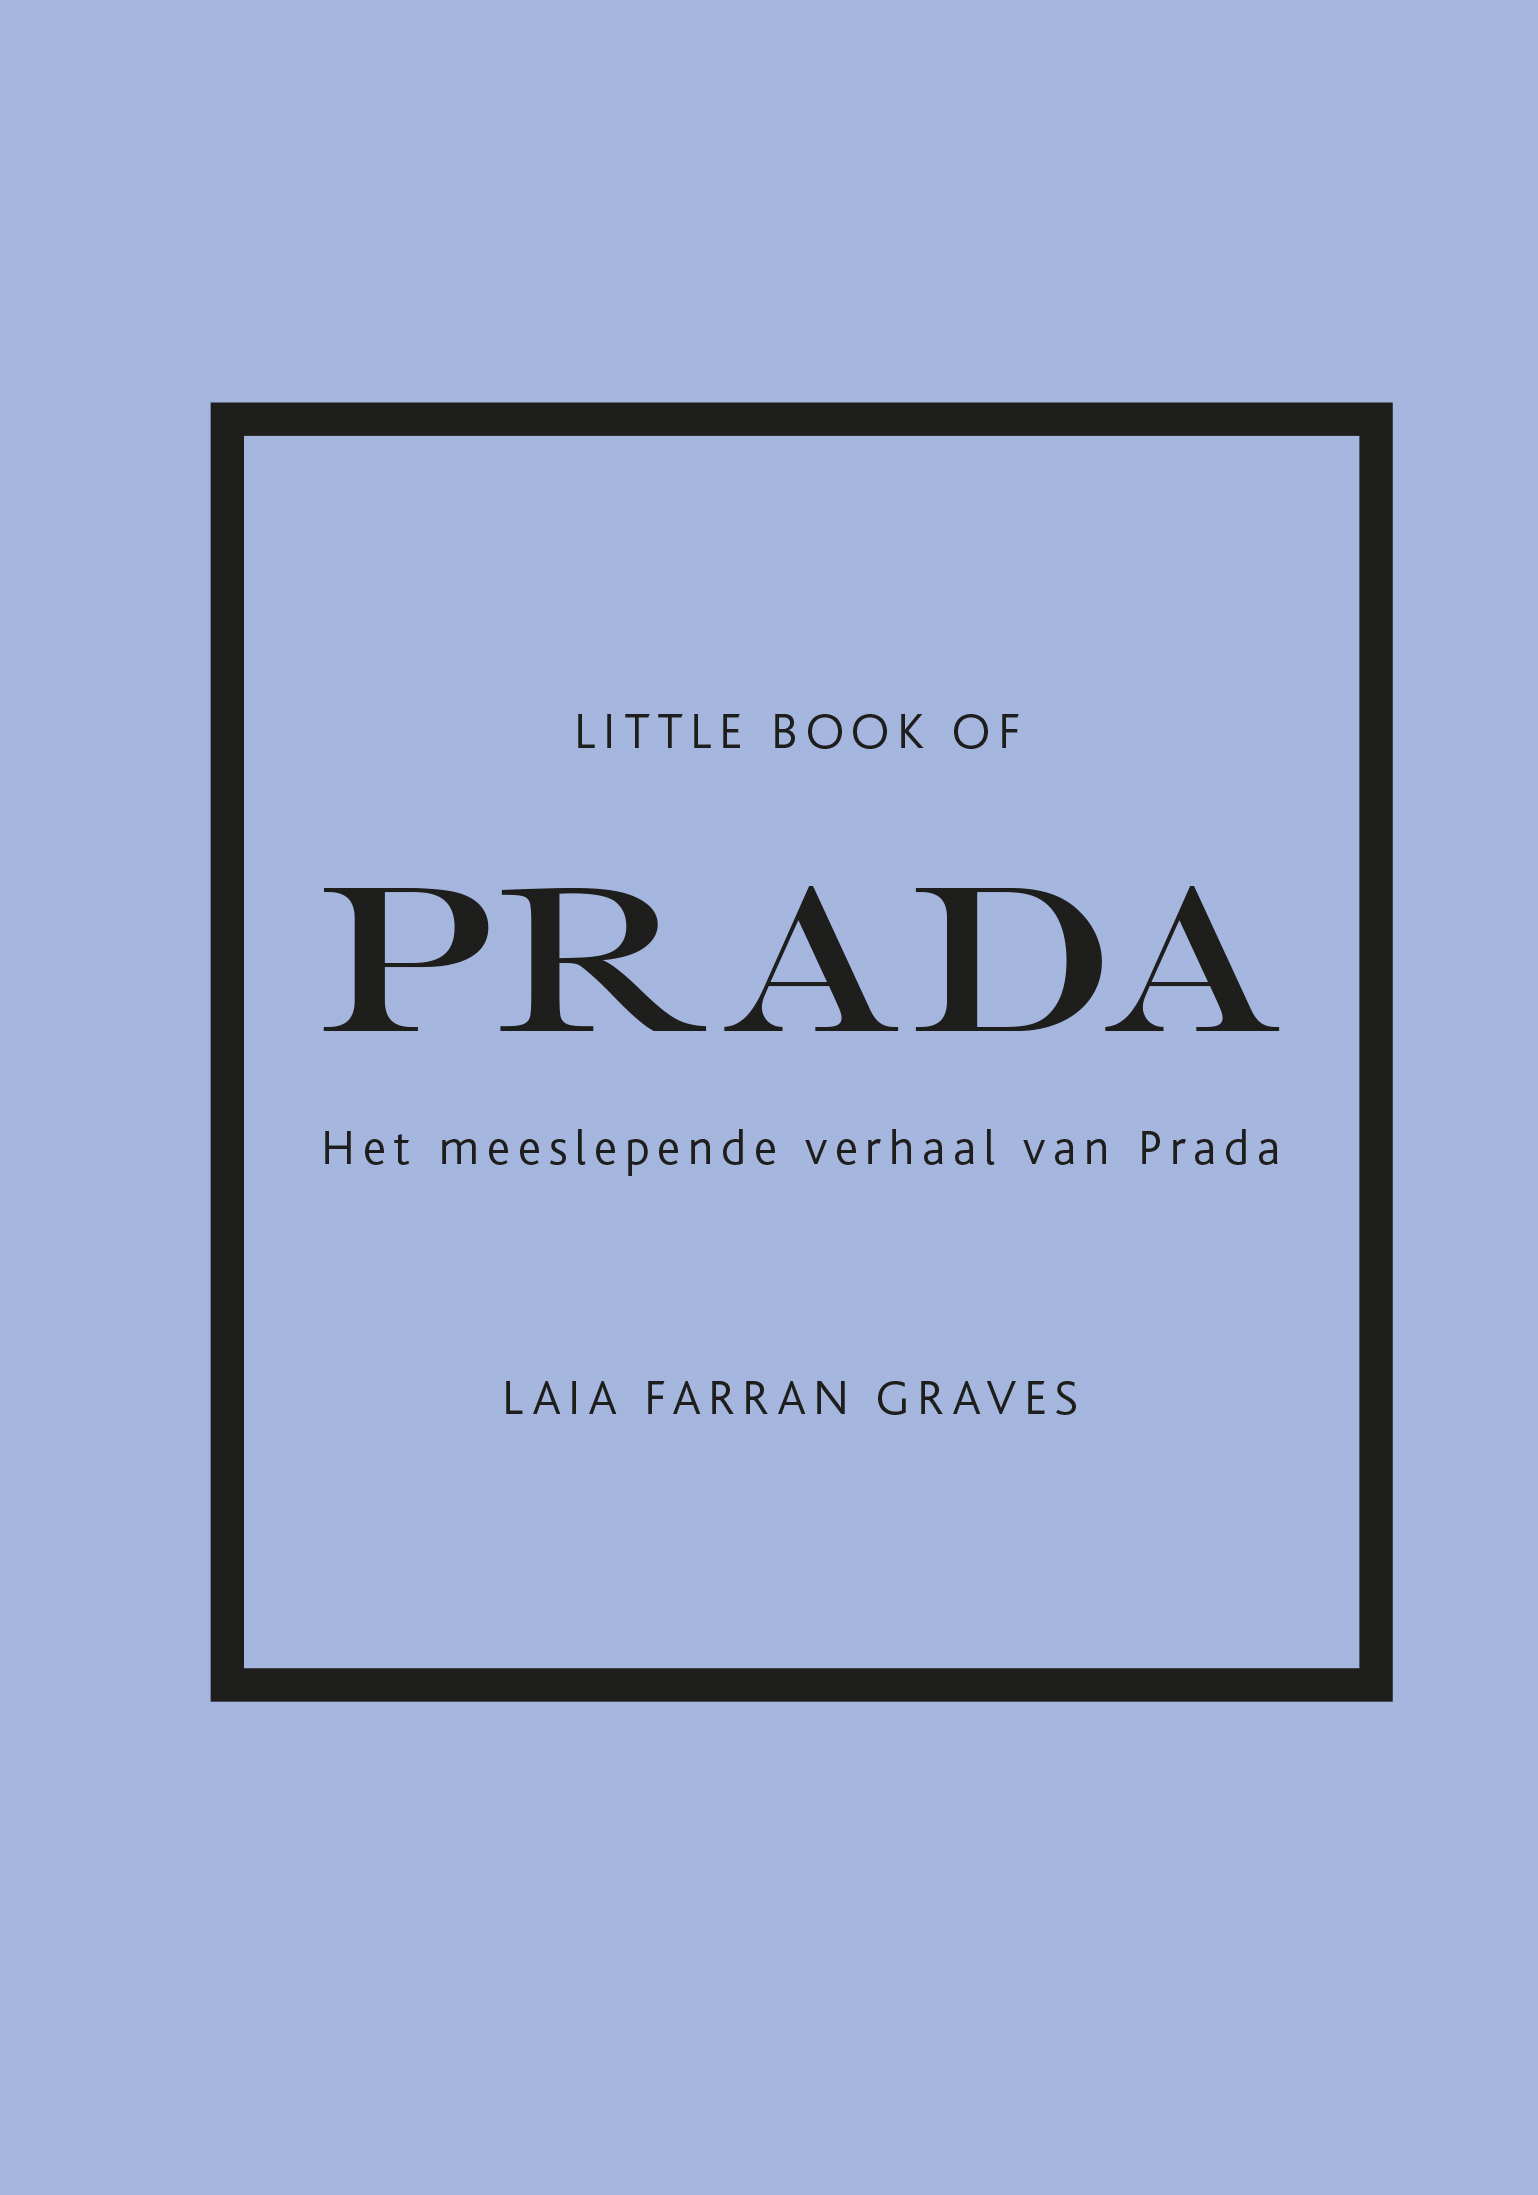 Little Book Of Prada - boekenflits